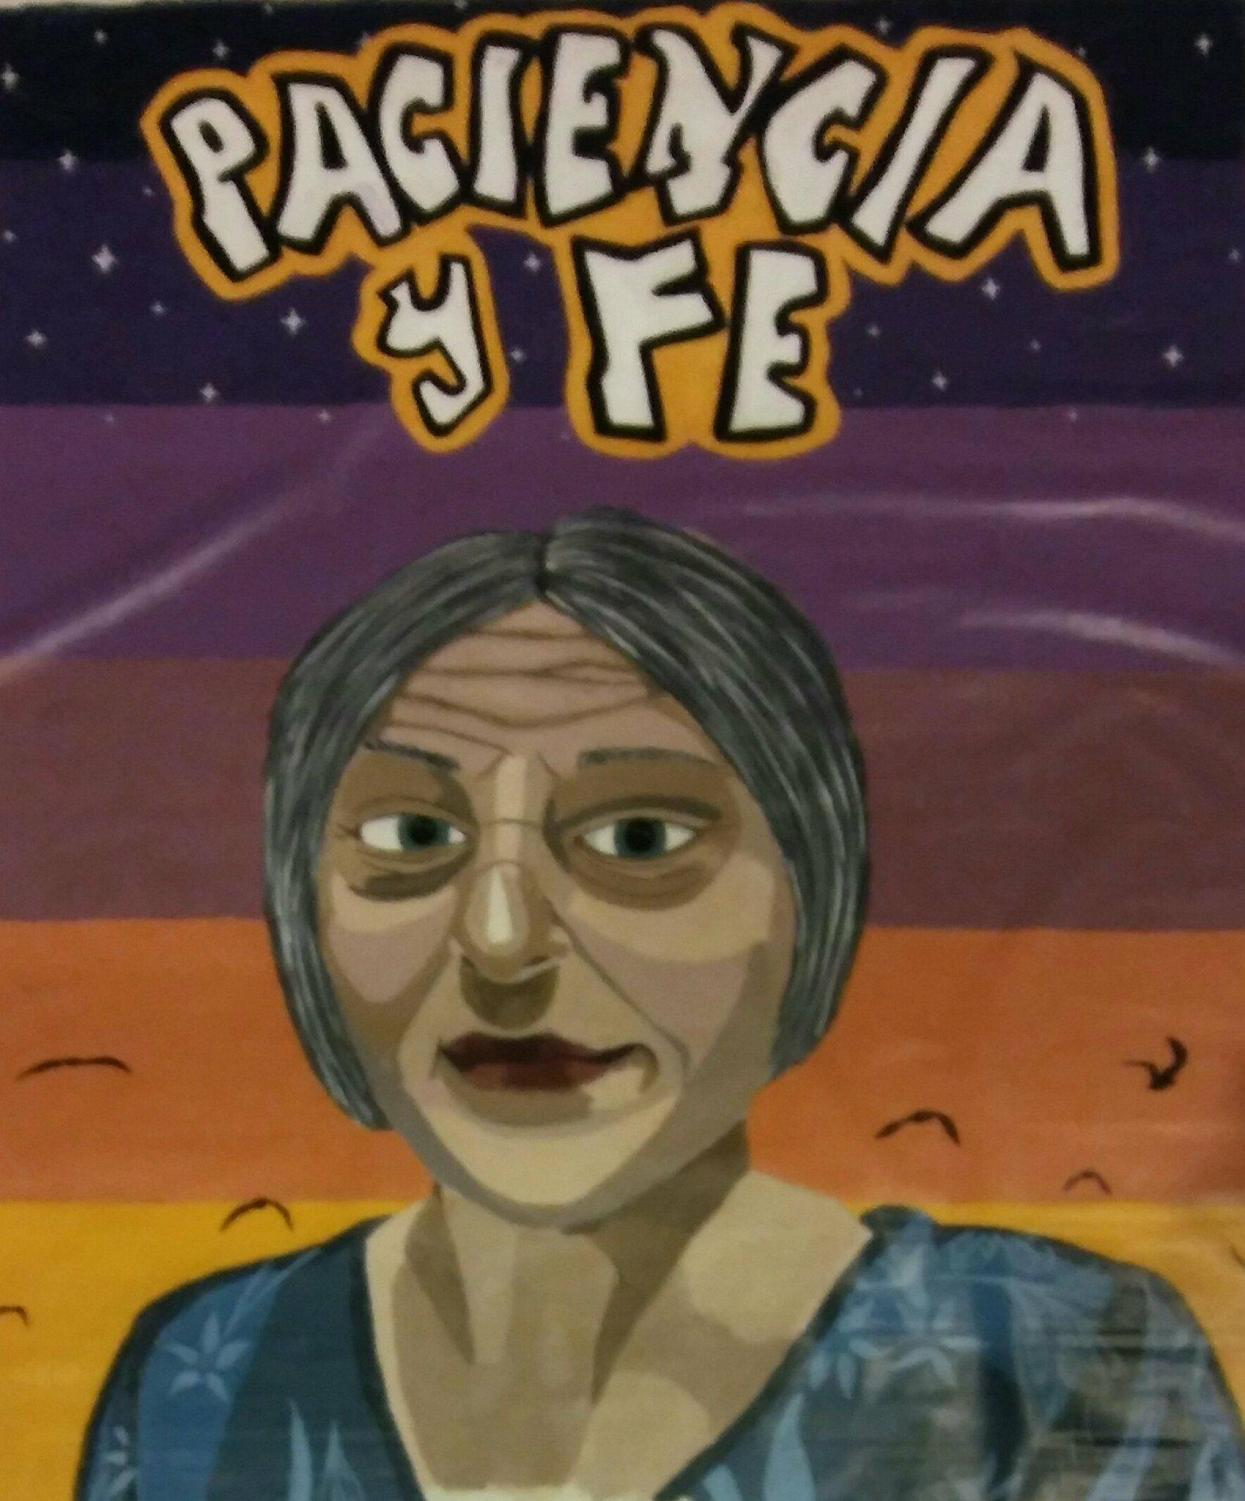 Revealed in Act Two, this mural depicts Abuela Claudia and her personal motto,